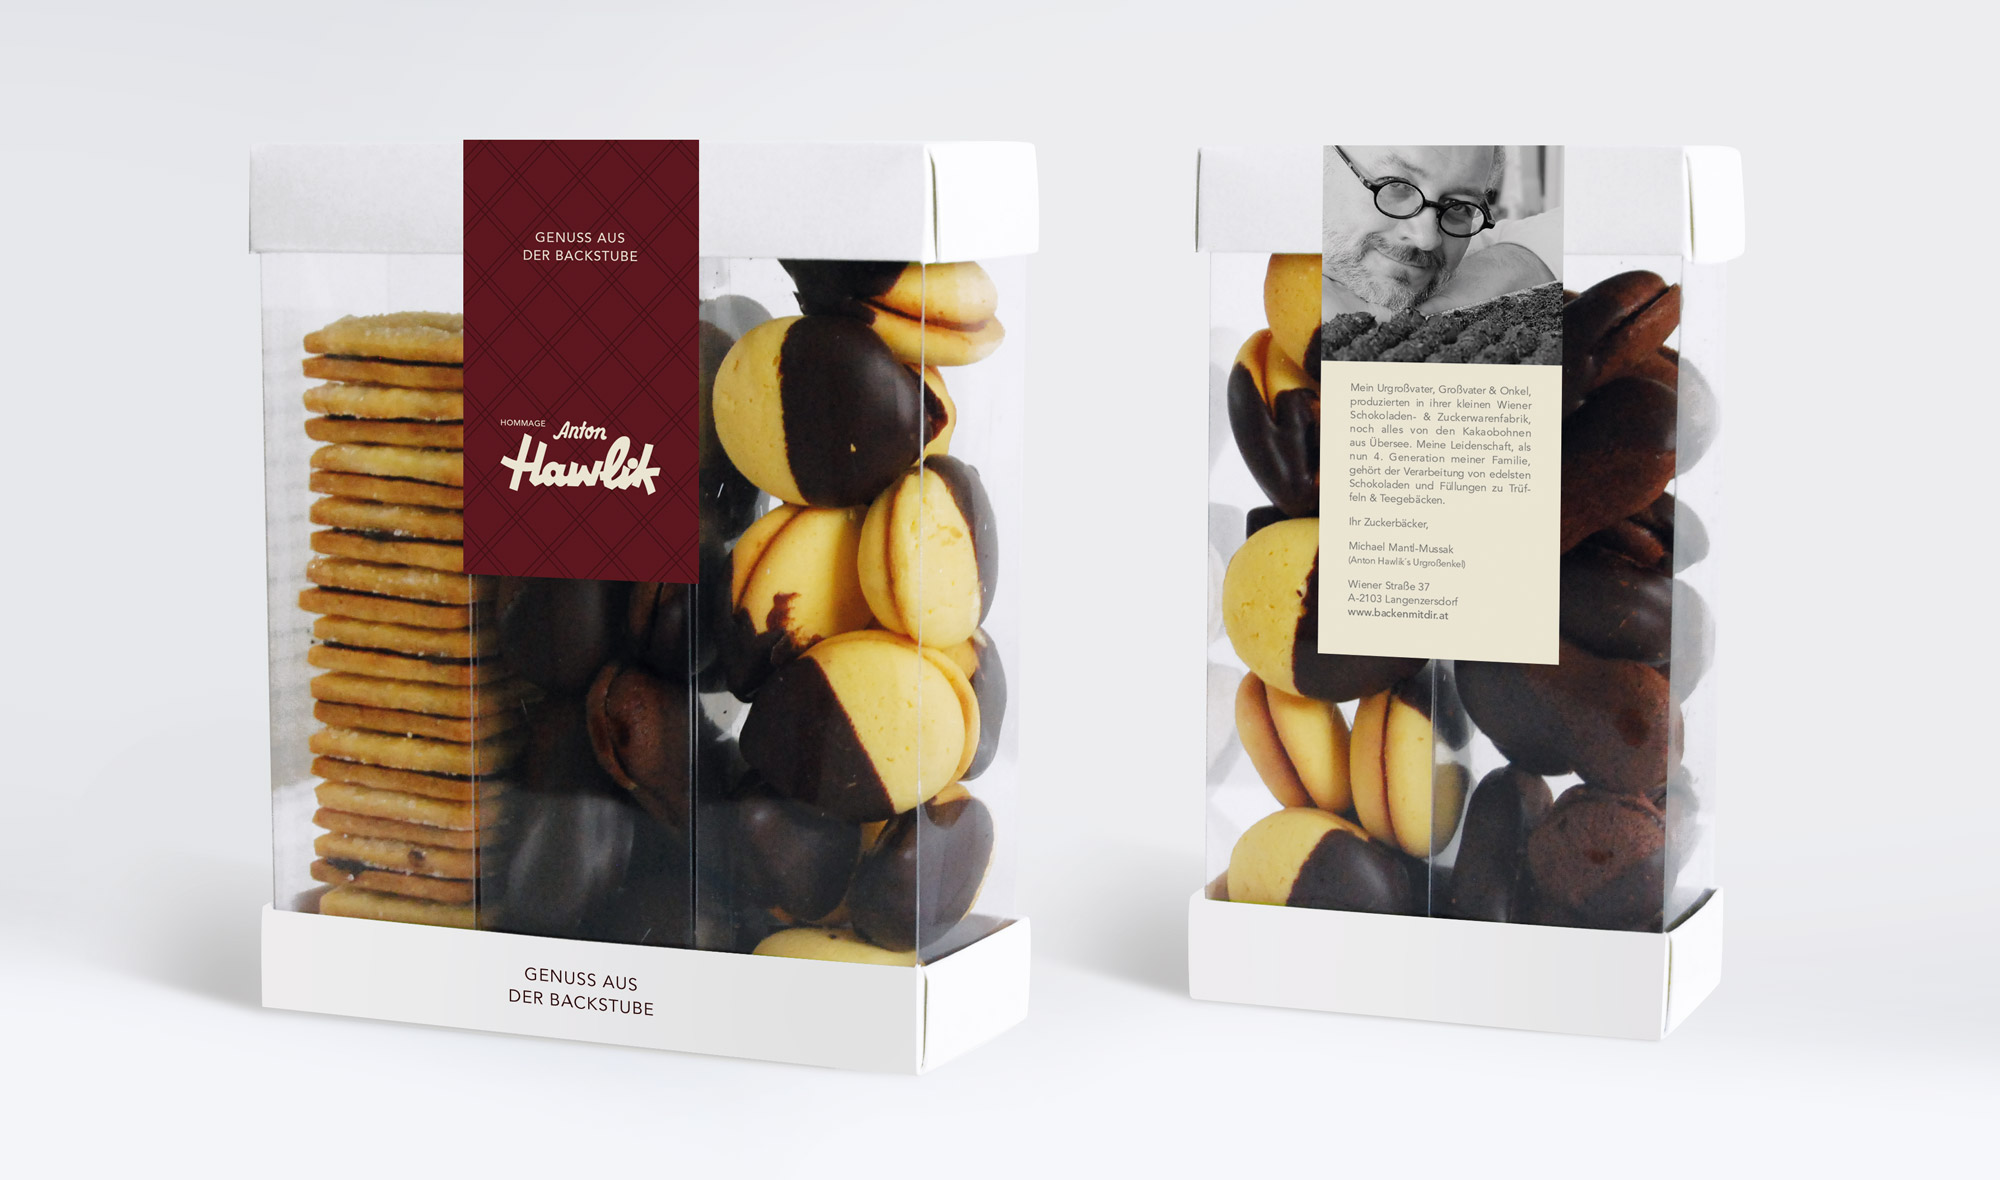 Verpackungsdesign, Packaging Design